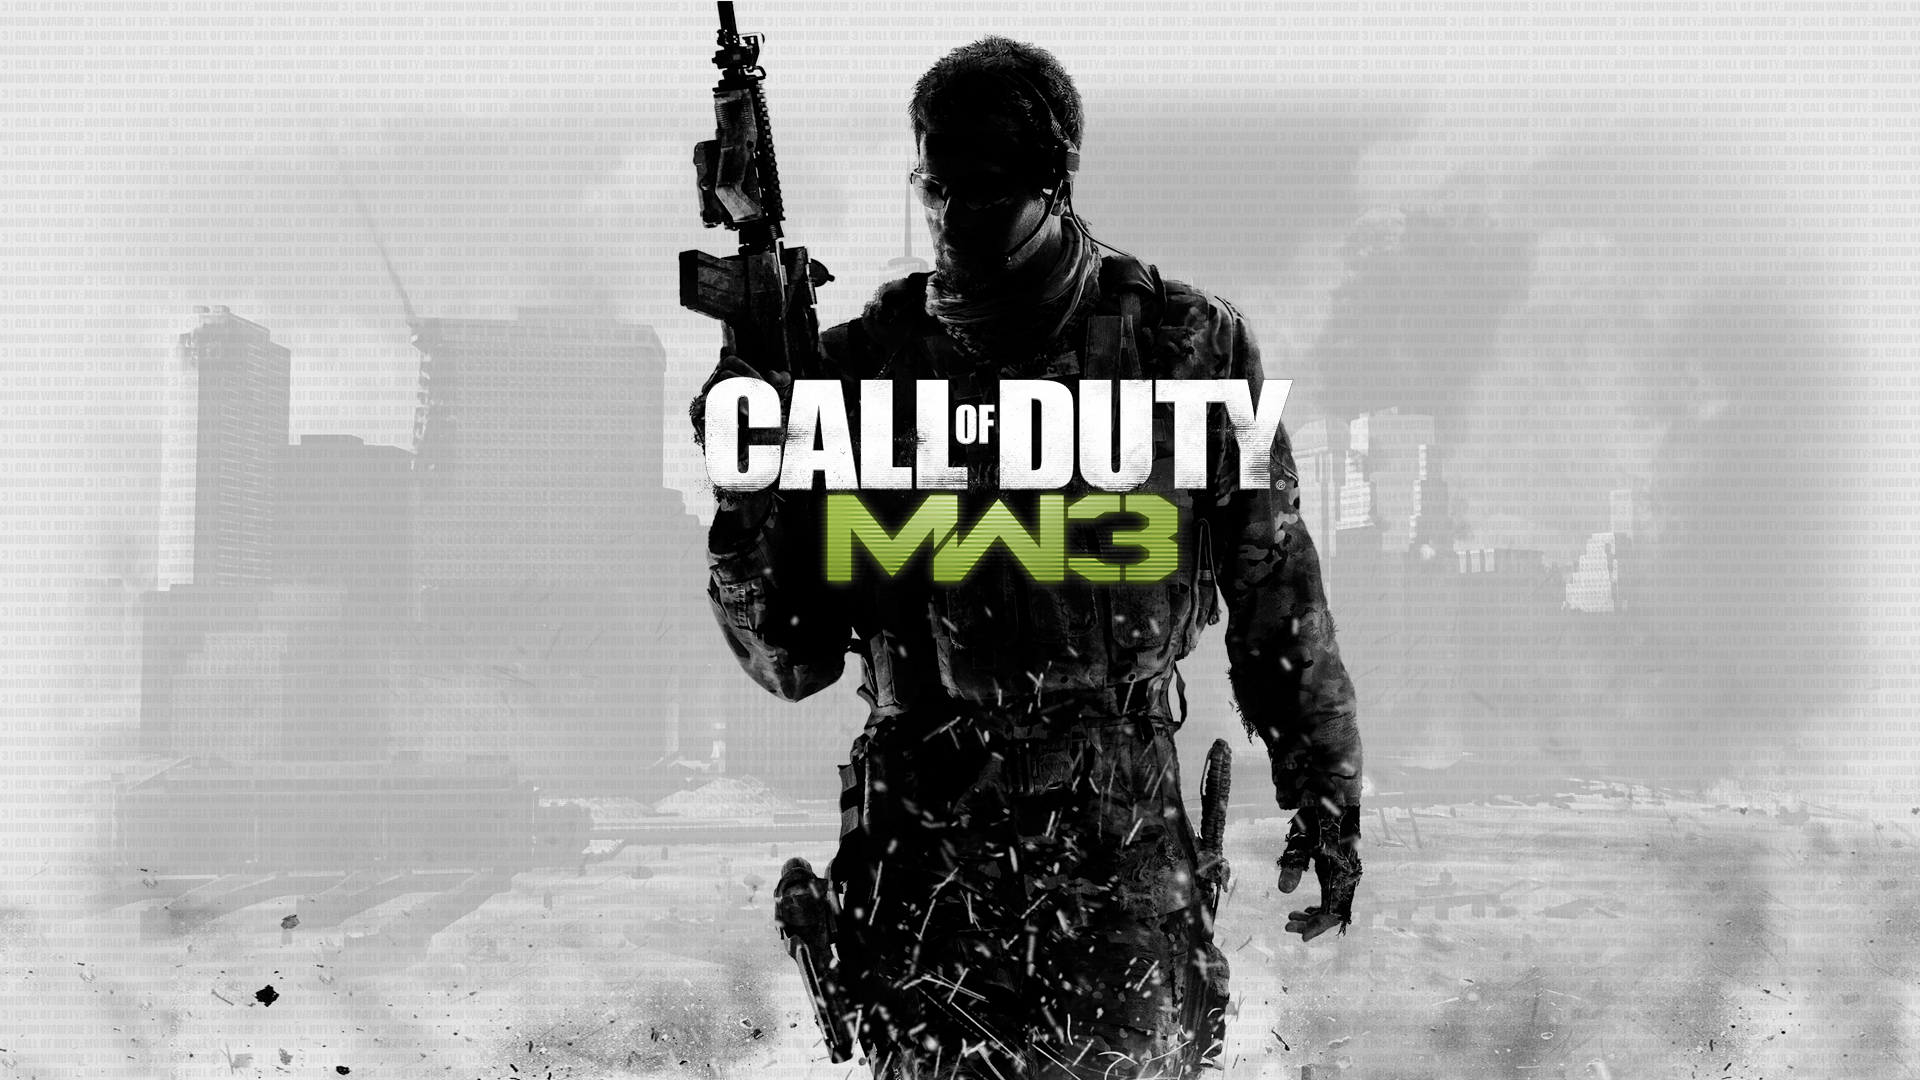 Wallpapers   Call of Duty MW3 Full HD wallpaper 1920x1080